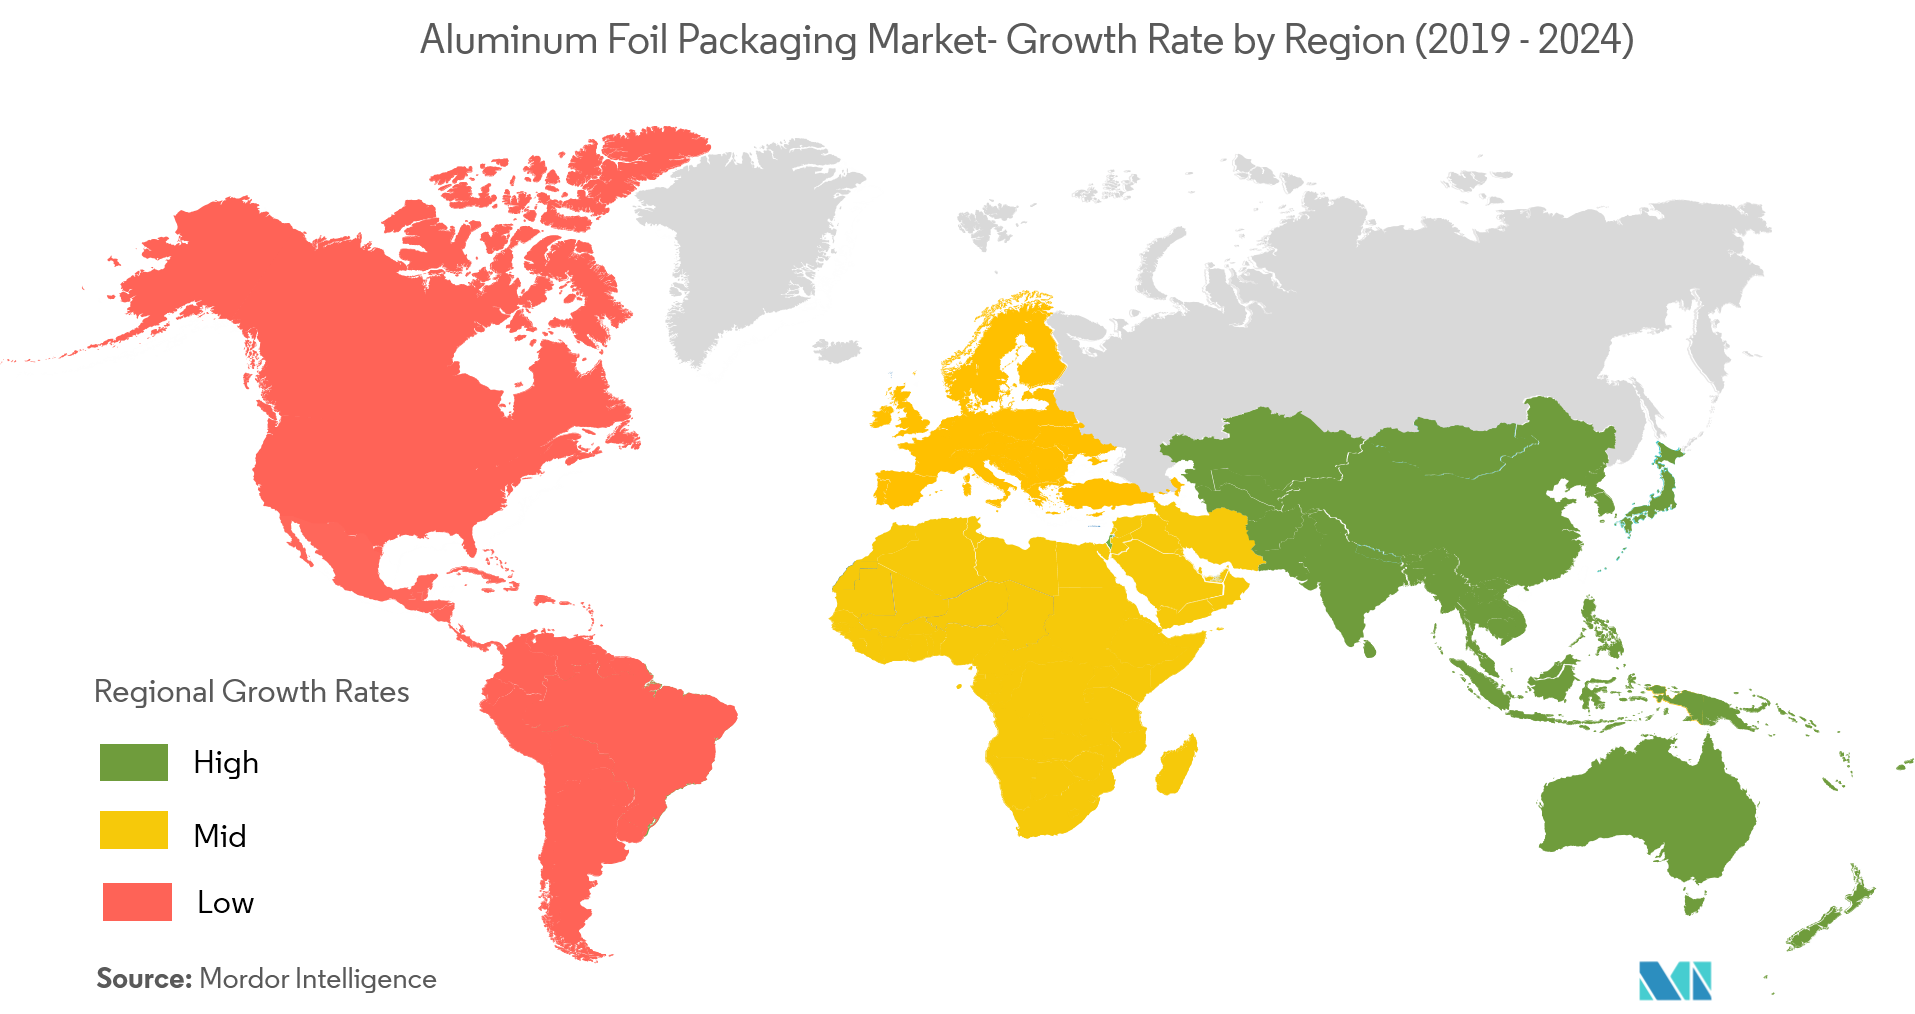 Aluminum Foil Packaging Market Growth Rate By Region